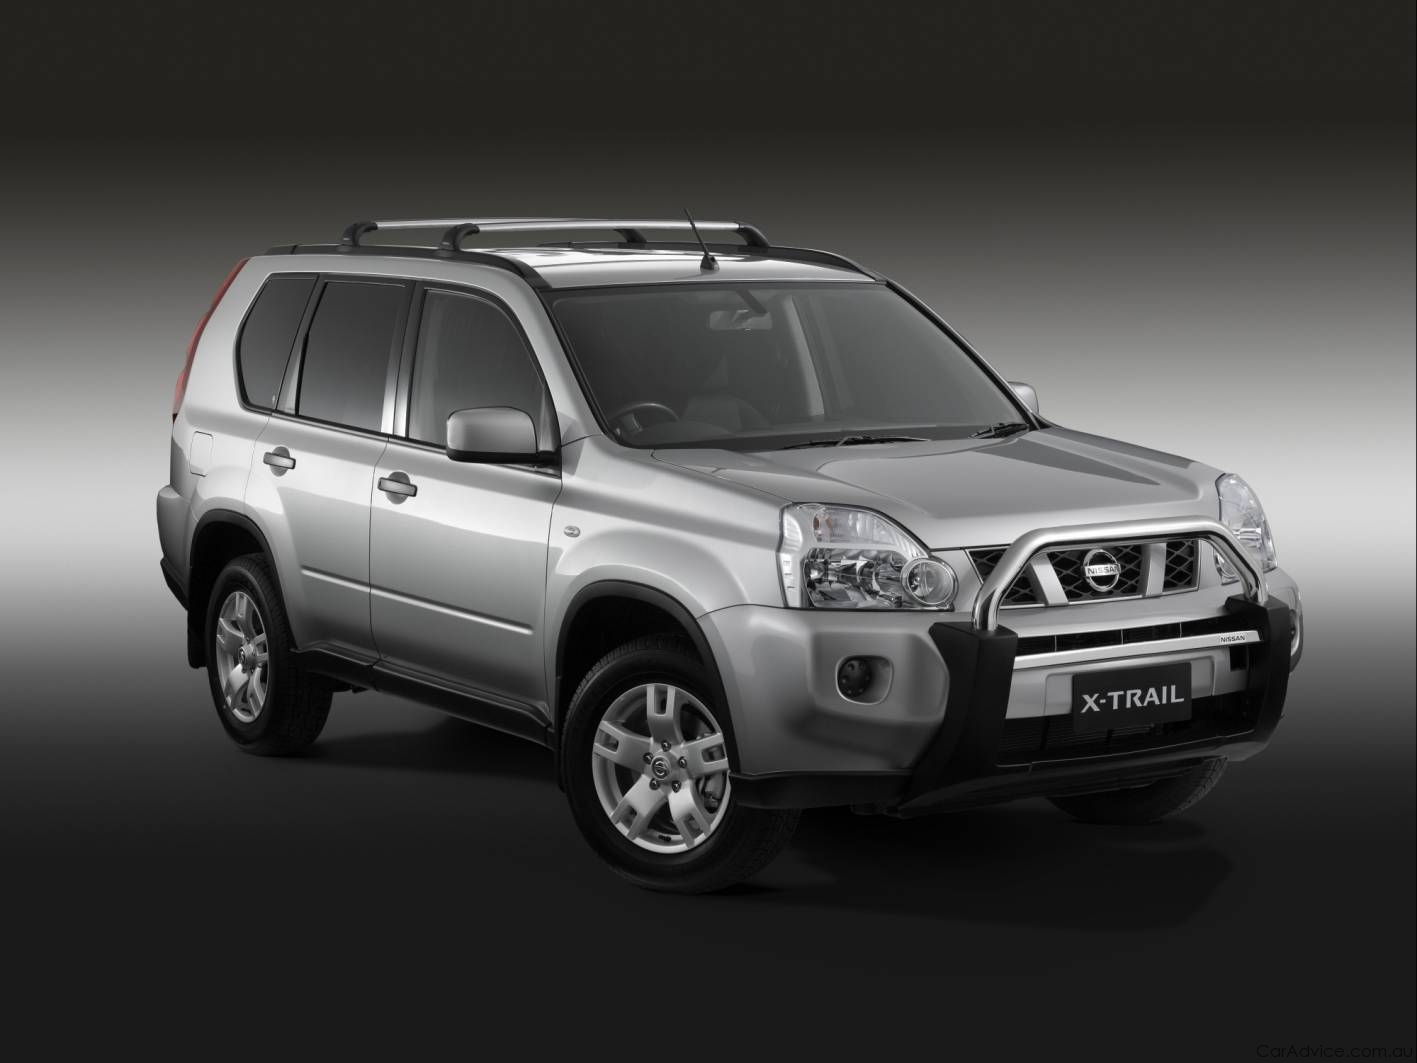 2009 nissan x-trail adventure edition. A11559 twin towns toyota.